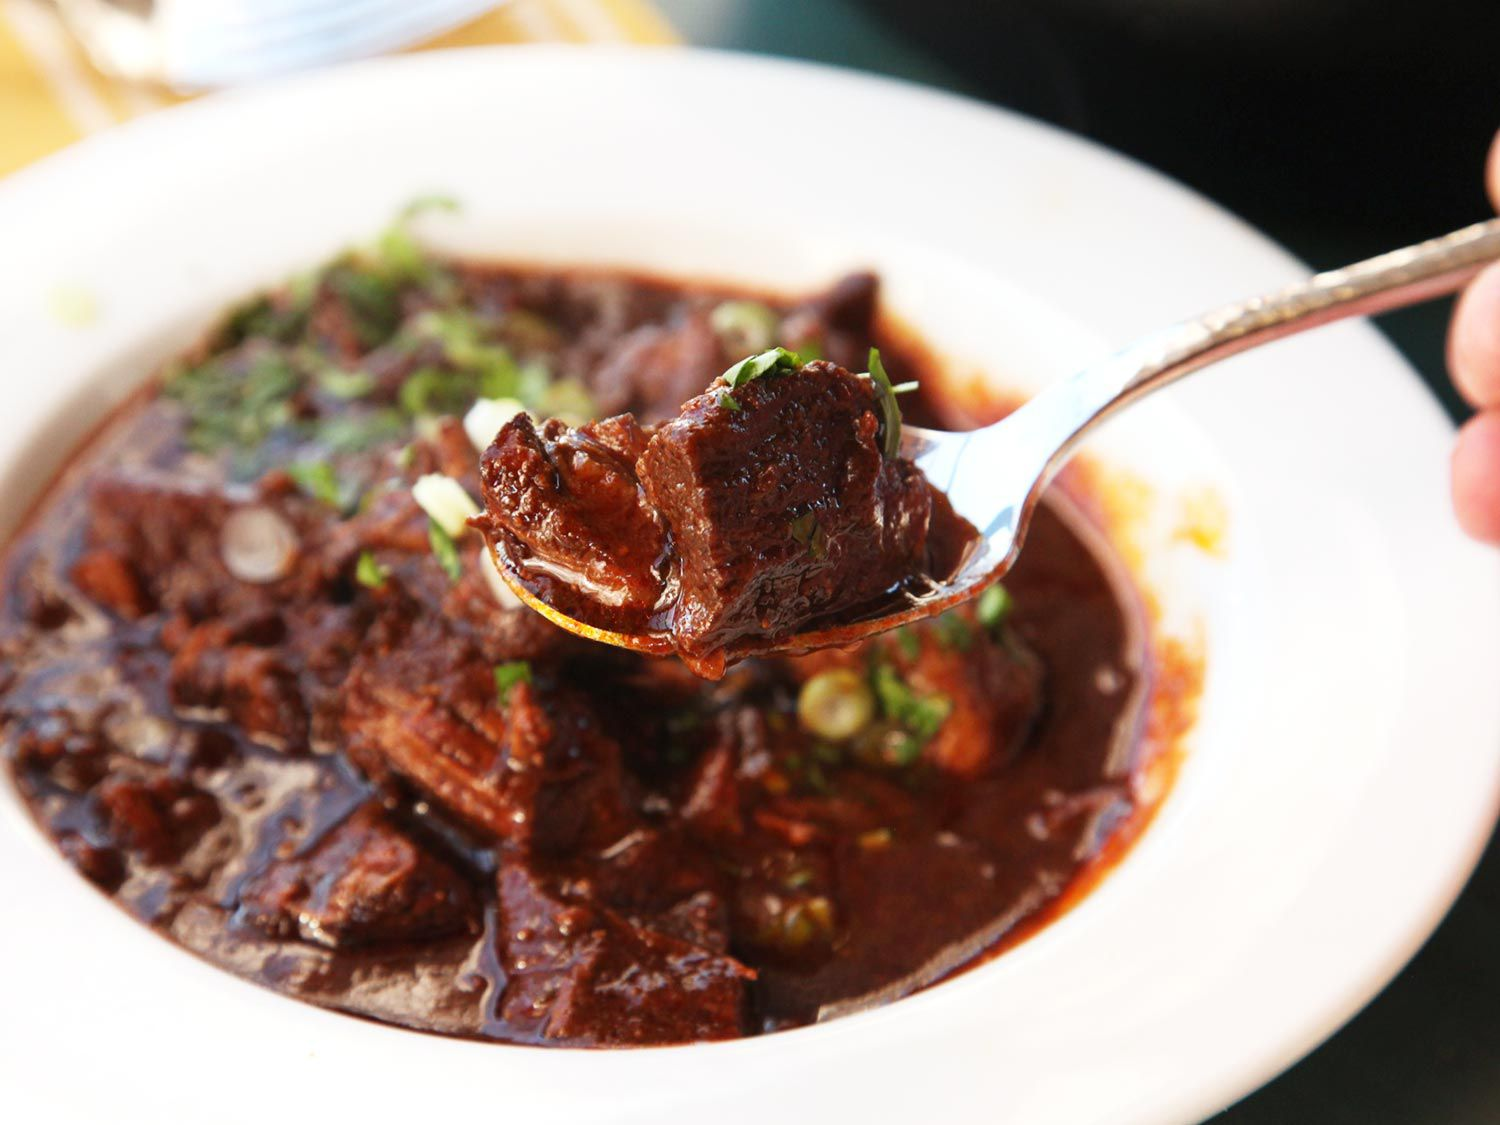 A bowl of Real Texas Chili con Carne, with a spoon of chili being held above the bowl.